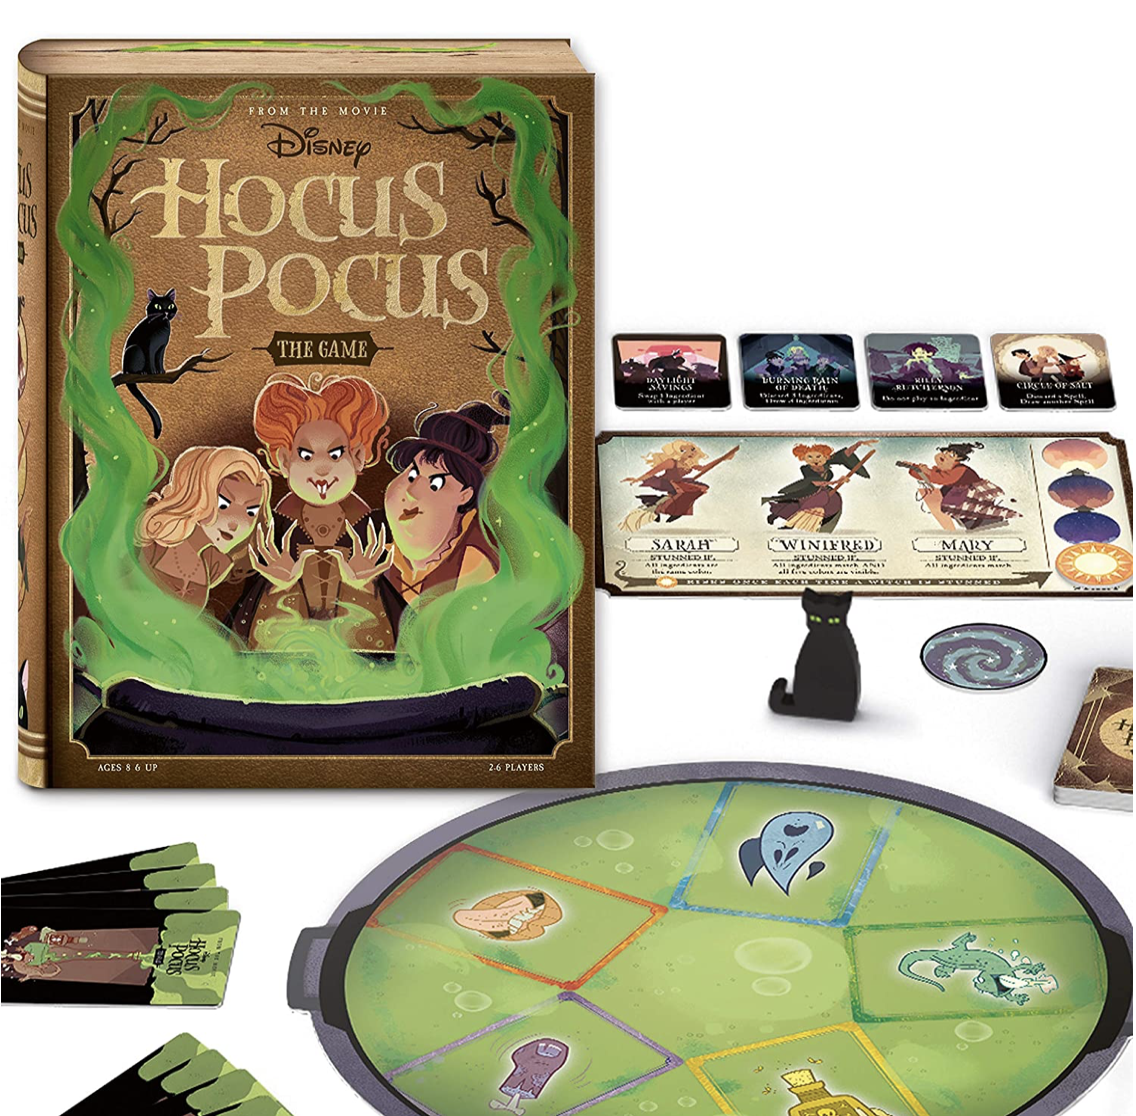 Disney Just Released A 'Hocus Pocus' Board Game And It Looks Wickedly Fun